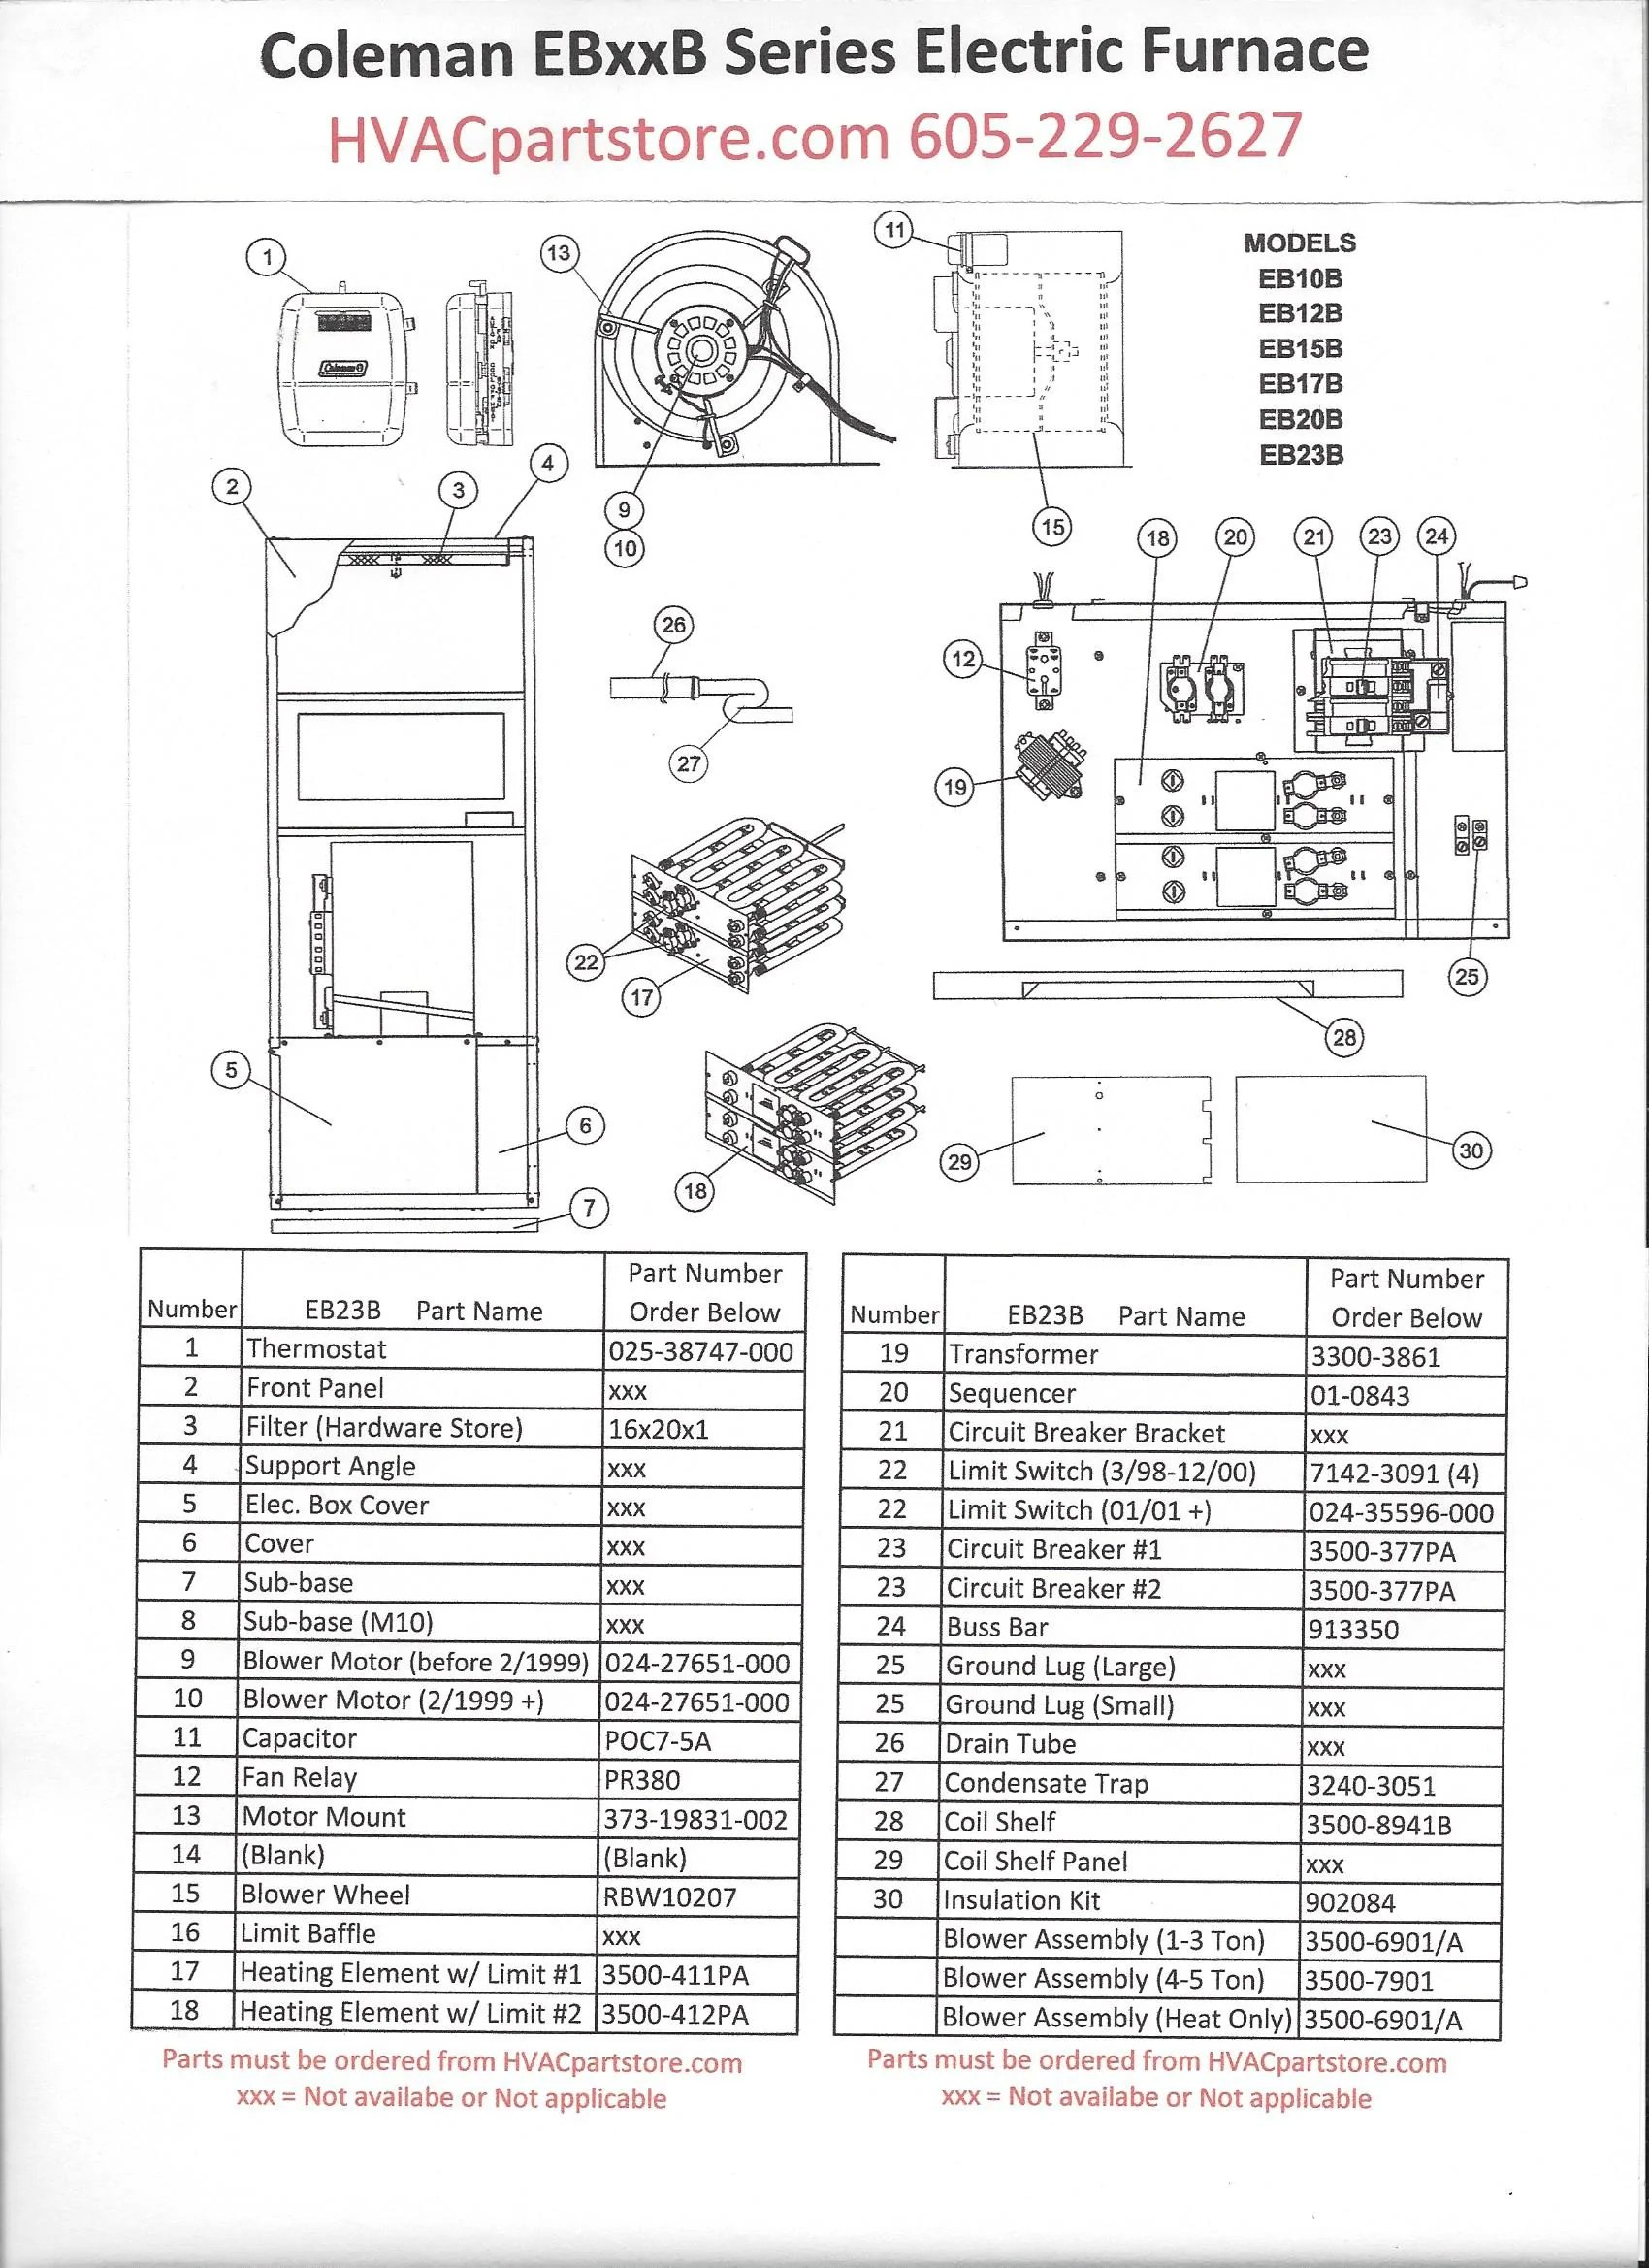 wiring diagram 3500a816 wiring diagram toolbox 3500a816 wiring diagram wiring diagram library wiring diagram 3500a816 [ 1700 x 2338 Pixel ]